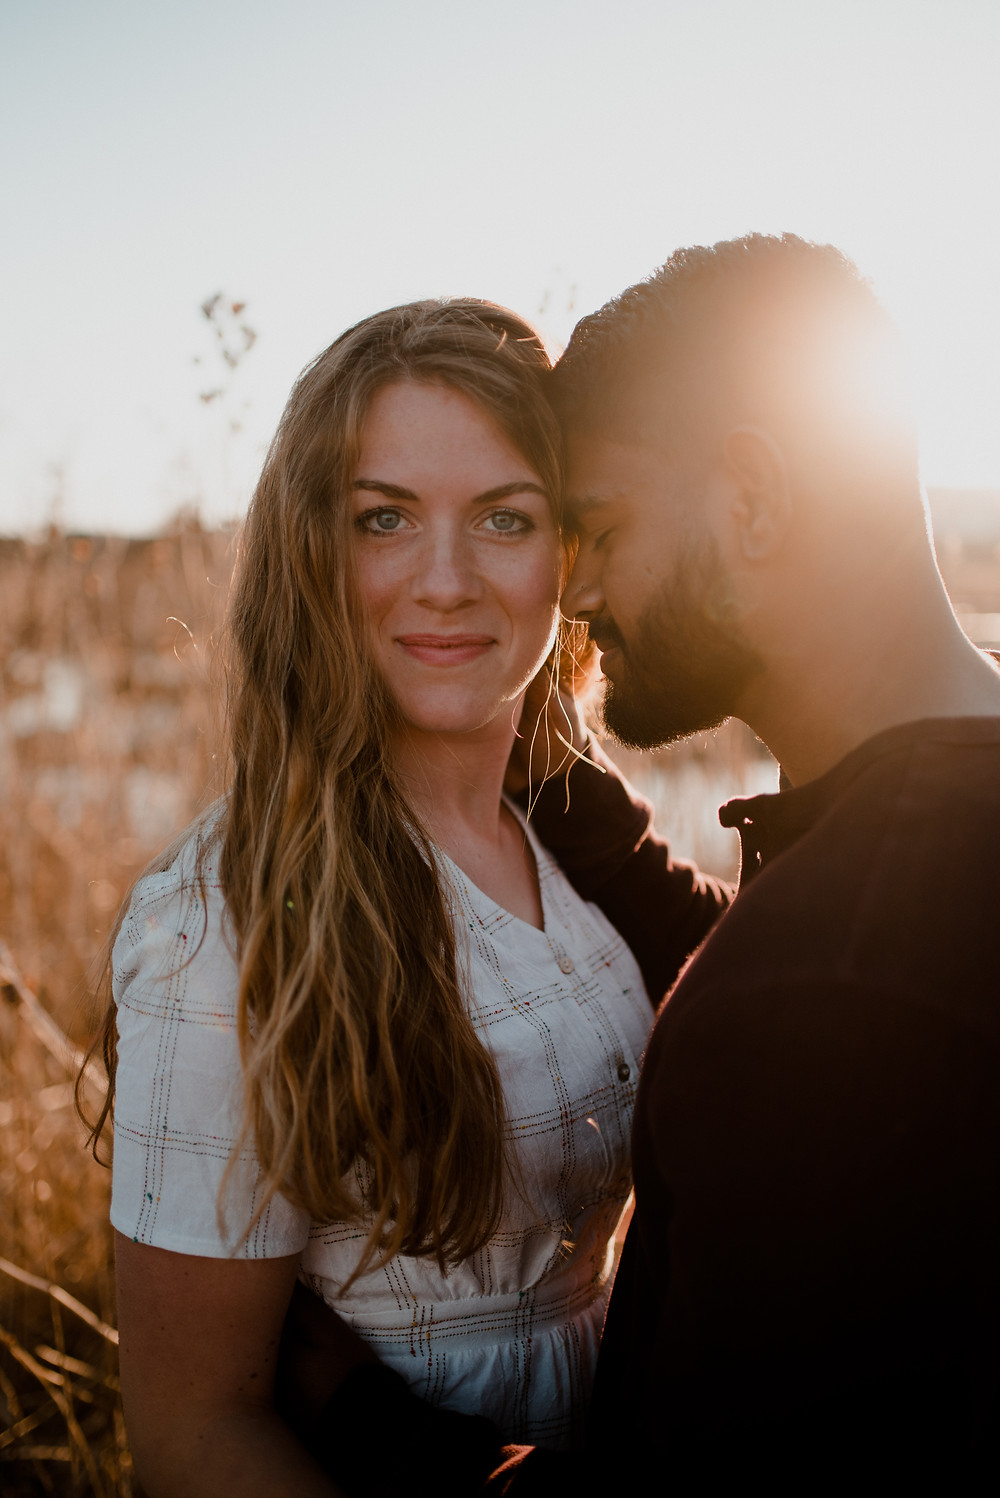 outdoors field romantic sunset engagement photo